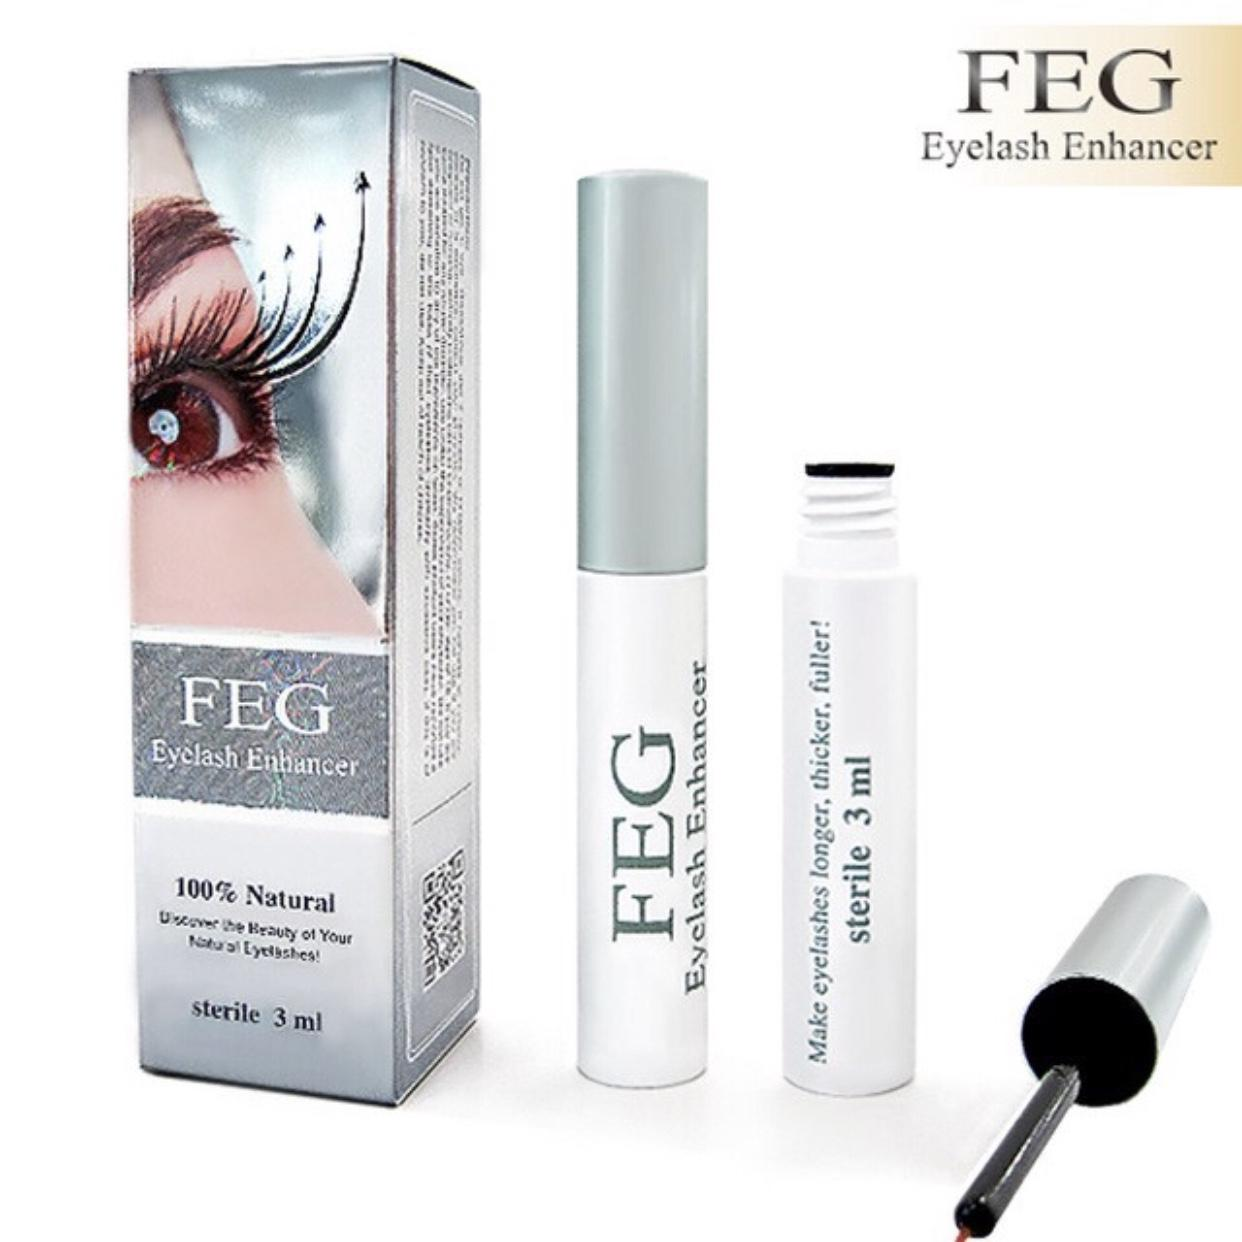 FEG Eyelash Enhancer Eye Lash Rapid Growth Serum Liquid 100% Natural 3ml US Philippines